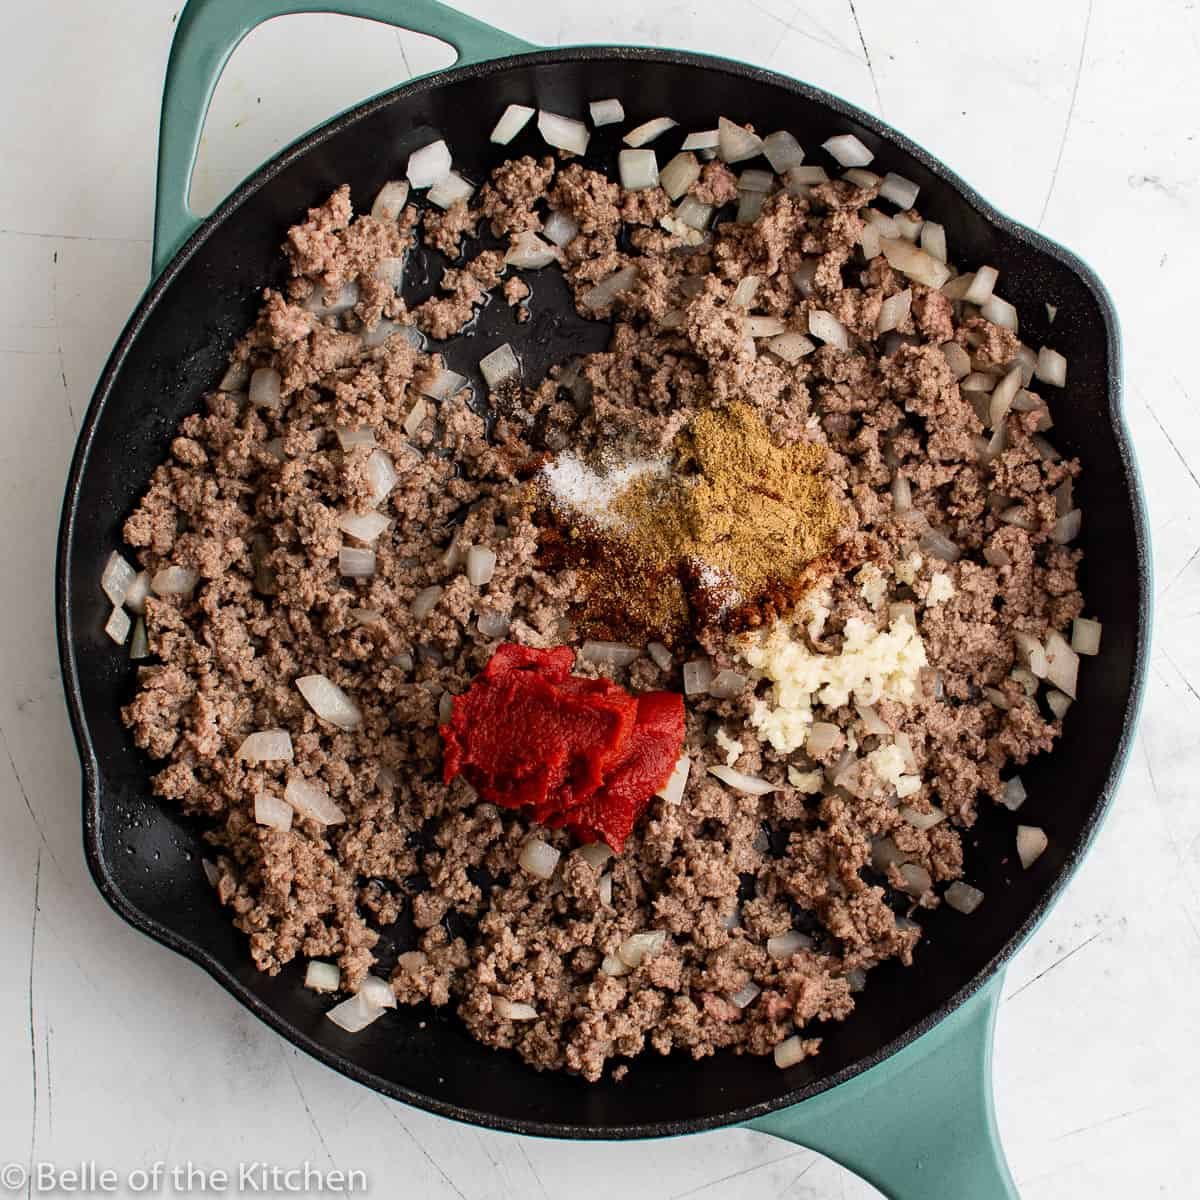 a skillet full of ground beef, onions, and spices